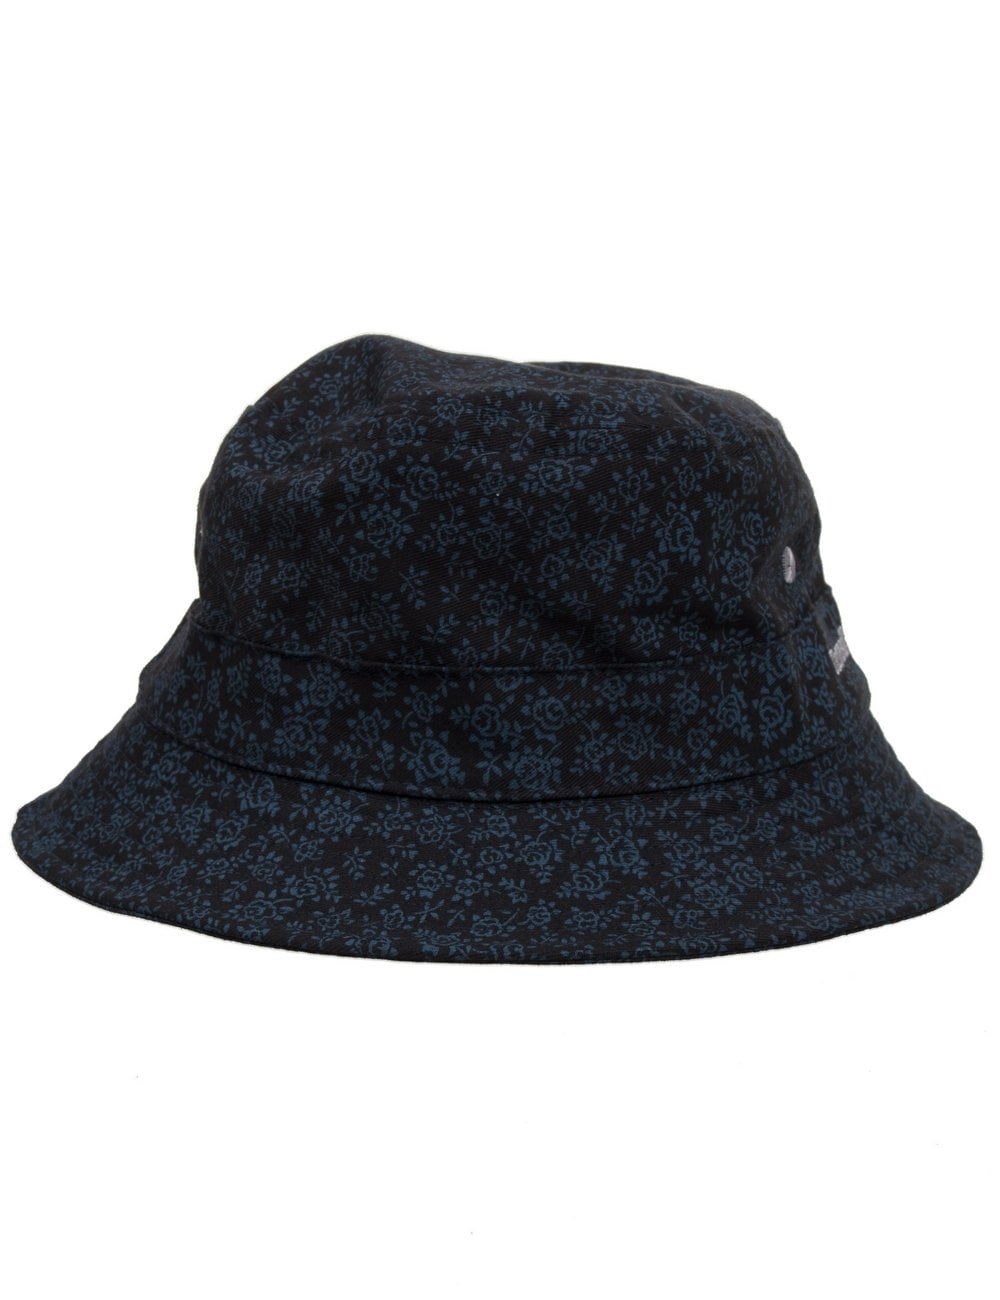 cb60d53f Universal Works Bucket Hat - Navy - Accessories from Fat Buddha Store UK